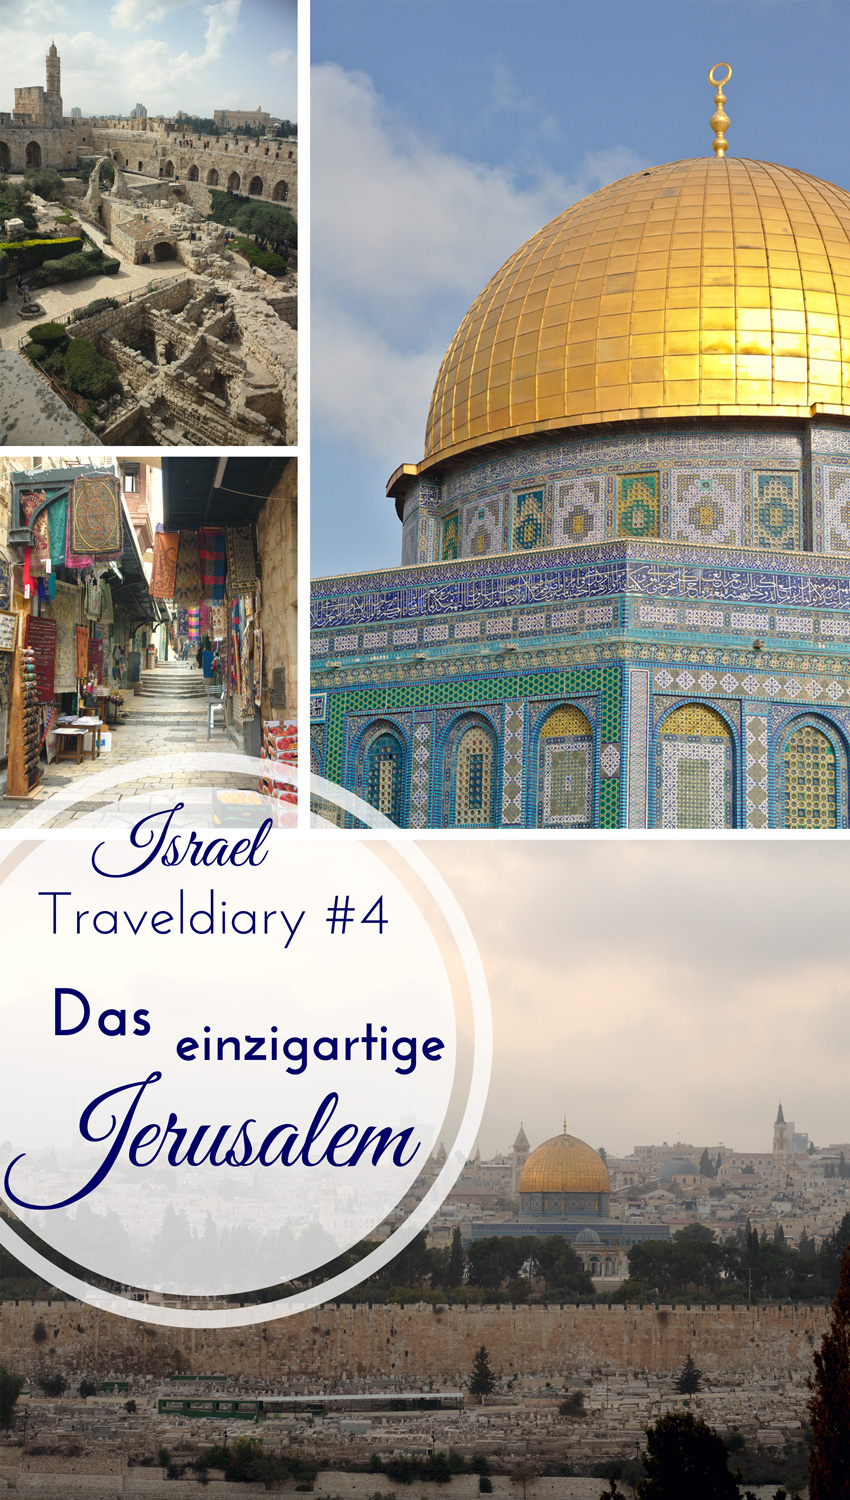 All the wonderful things: Israel Traveldiary #4 - Das einzigartige Jerusalem; Reise, Felsendom, Temelberg, Davidsturm, Altstadt